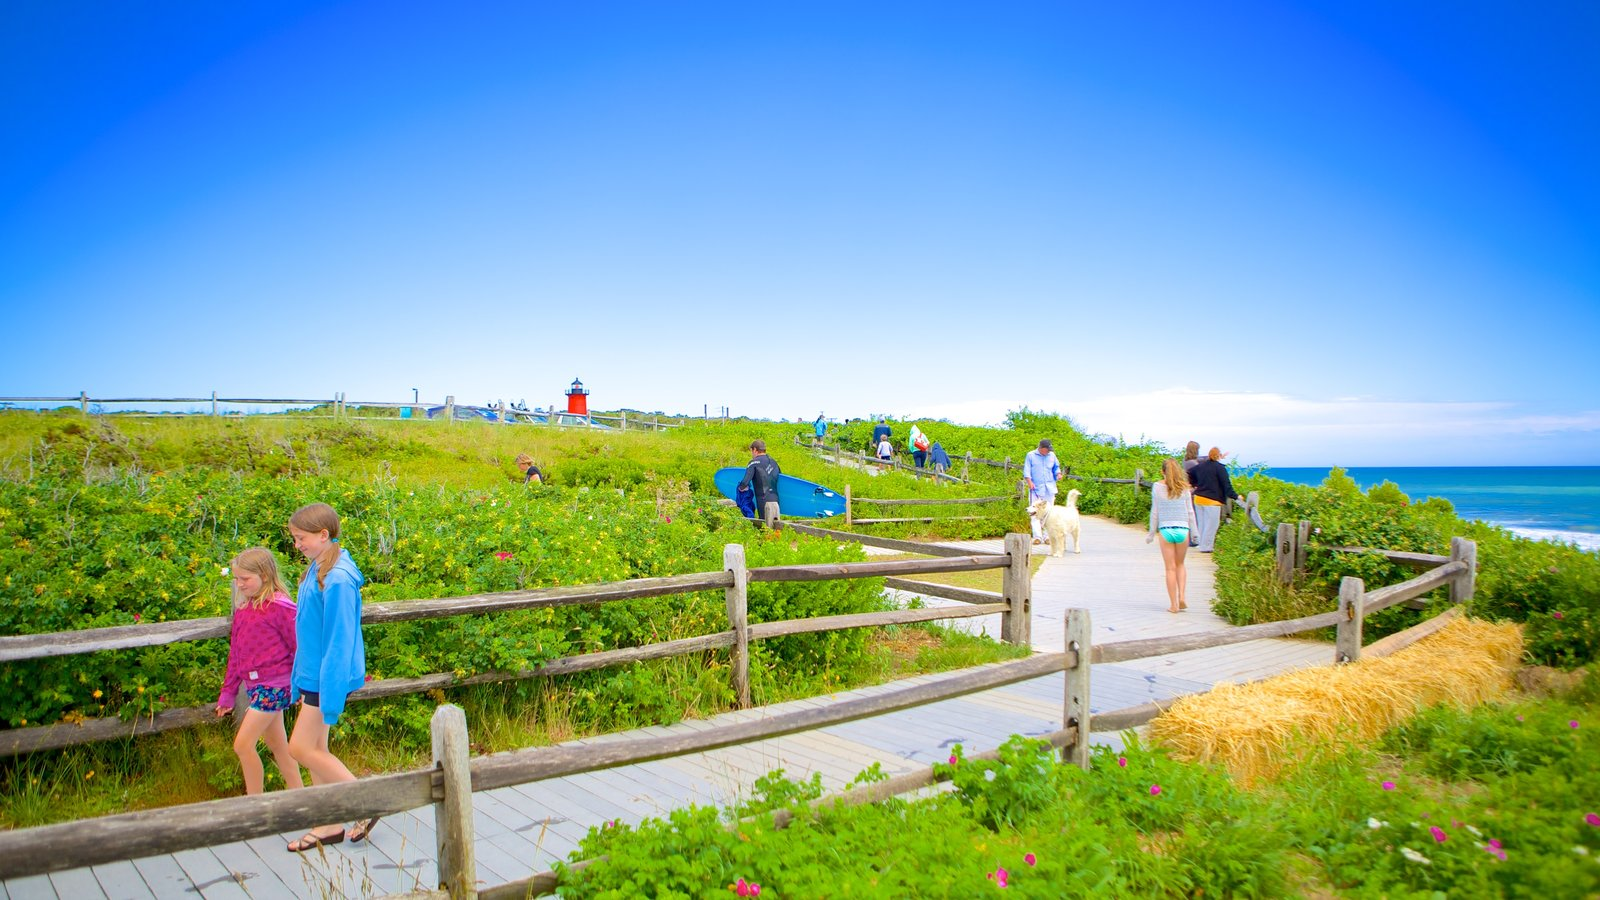 Cape Cod featuring hiking or walking and general coastal views as well as children